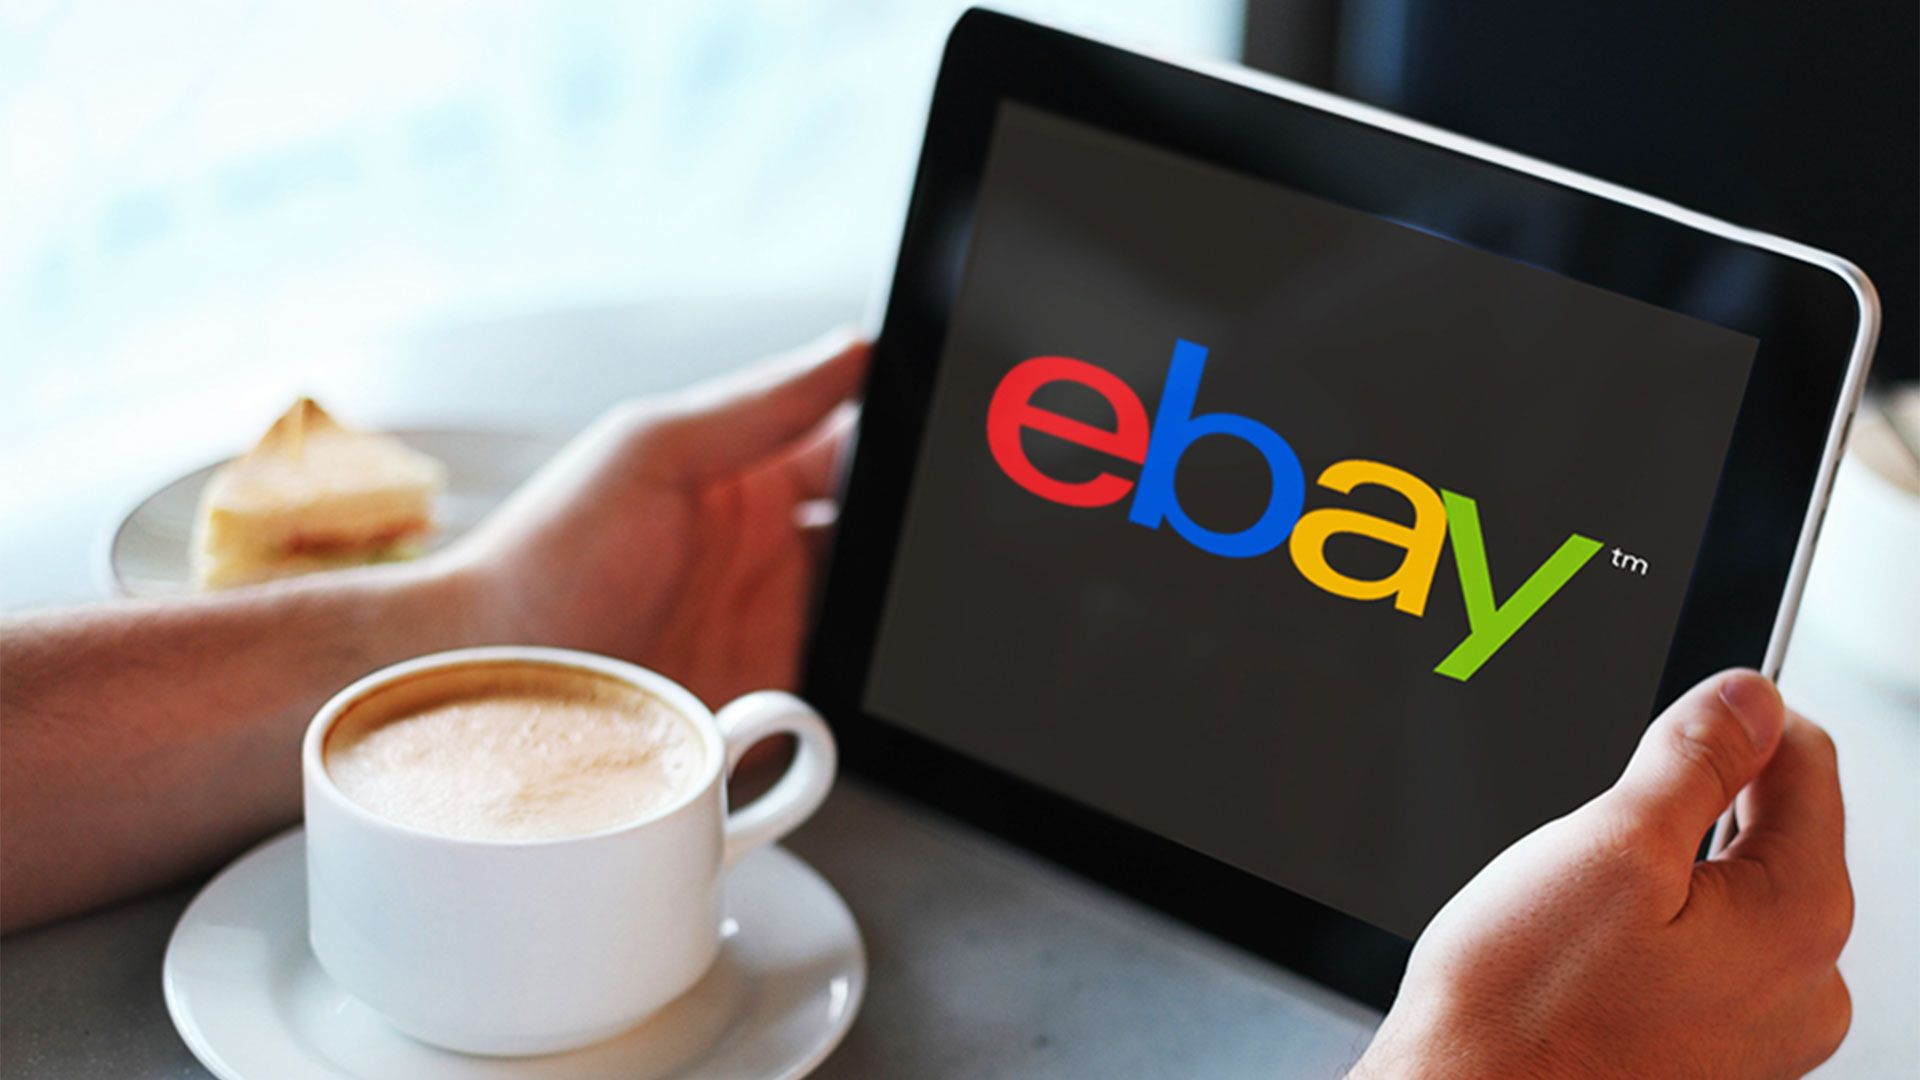 Ebay Wallpapers HD (With images) Ebay hacks, Things to